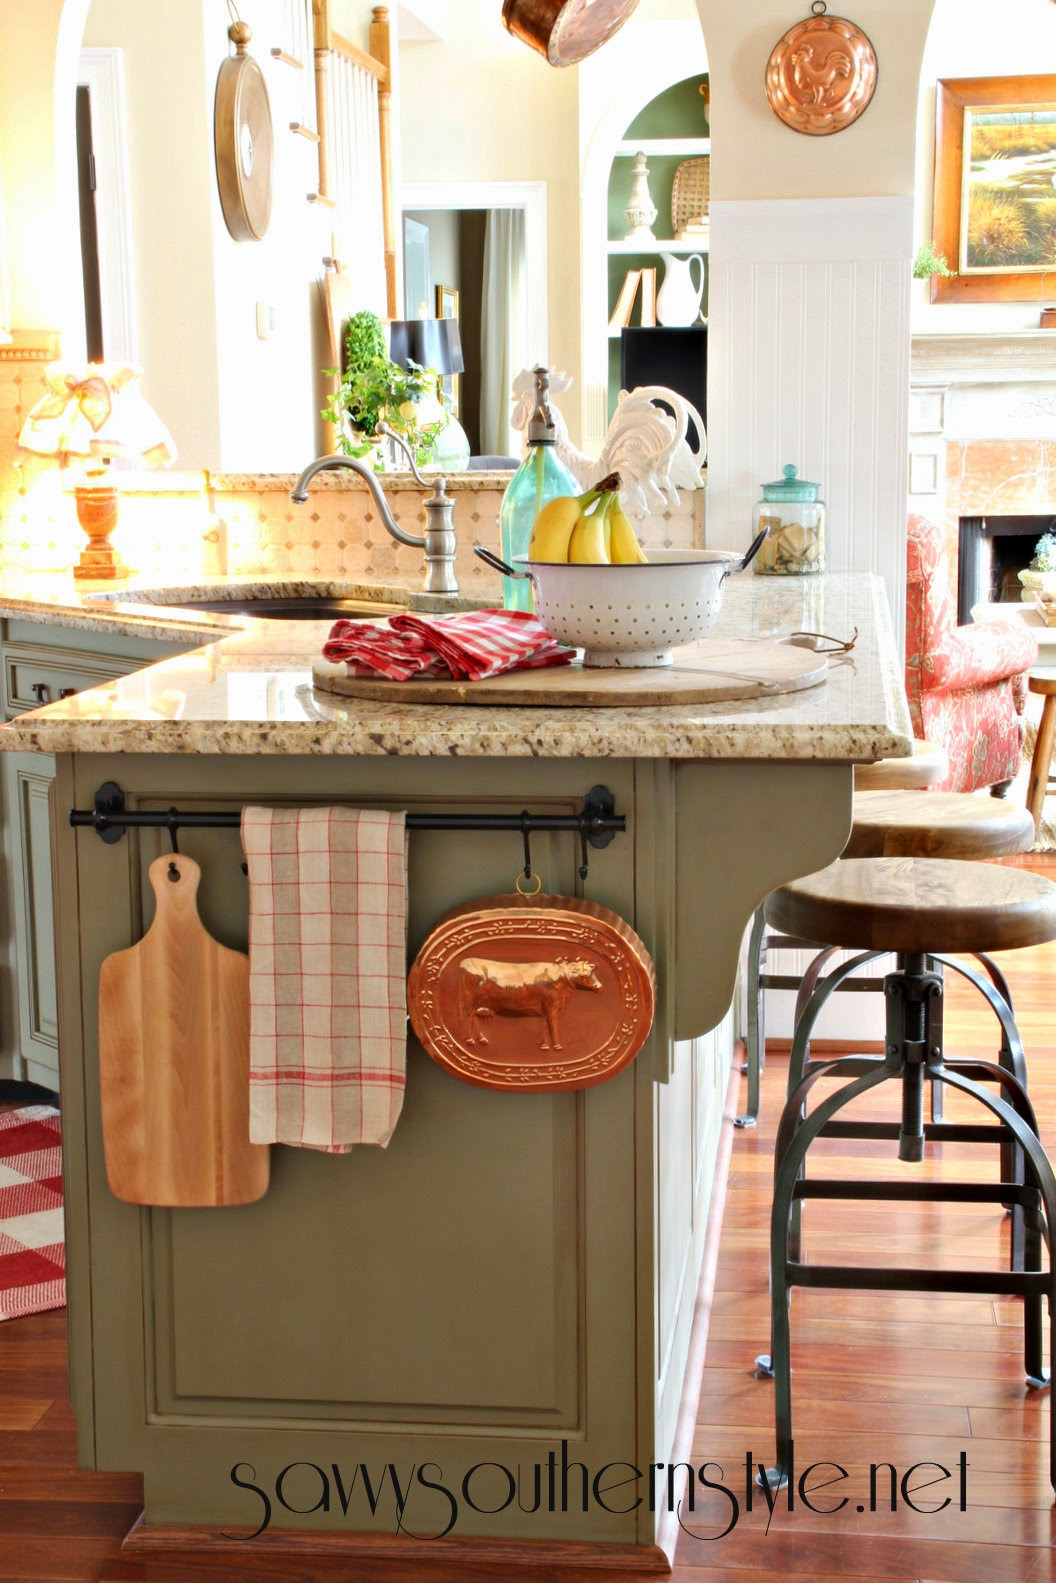 Savvy southern style some new things in the kitchen for Southern style kitchen ideas